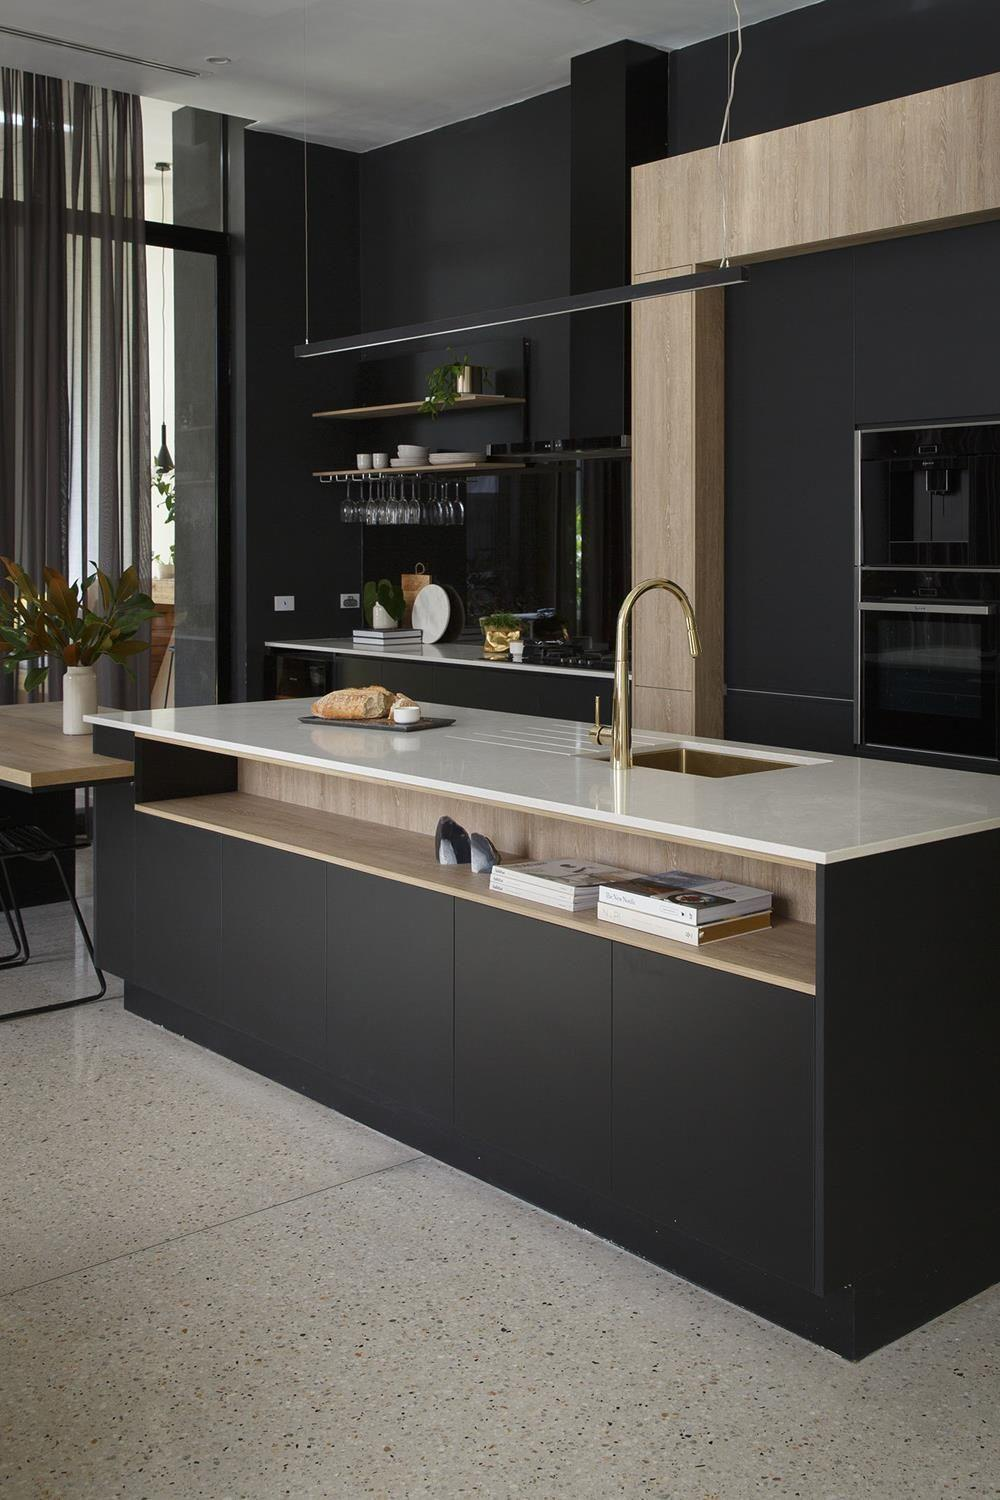 Cucine Moderne Con Isola Open Space.100 Idee Cucine Moderne Da Sogno Con Isola Ad U Open